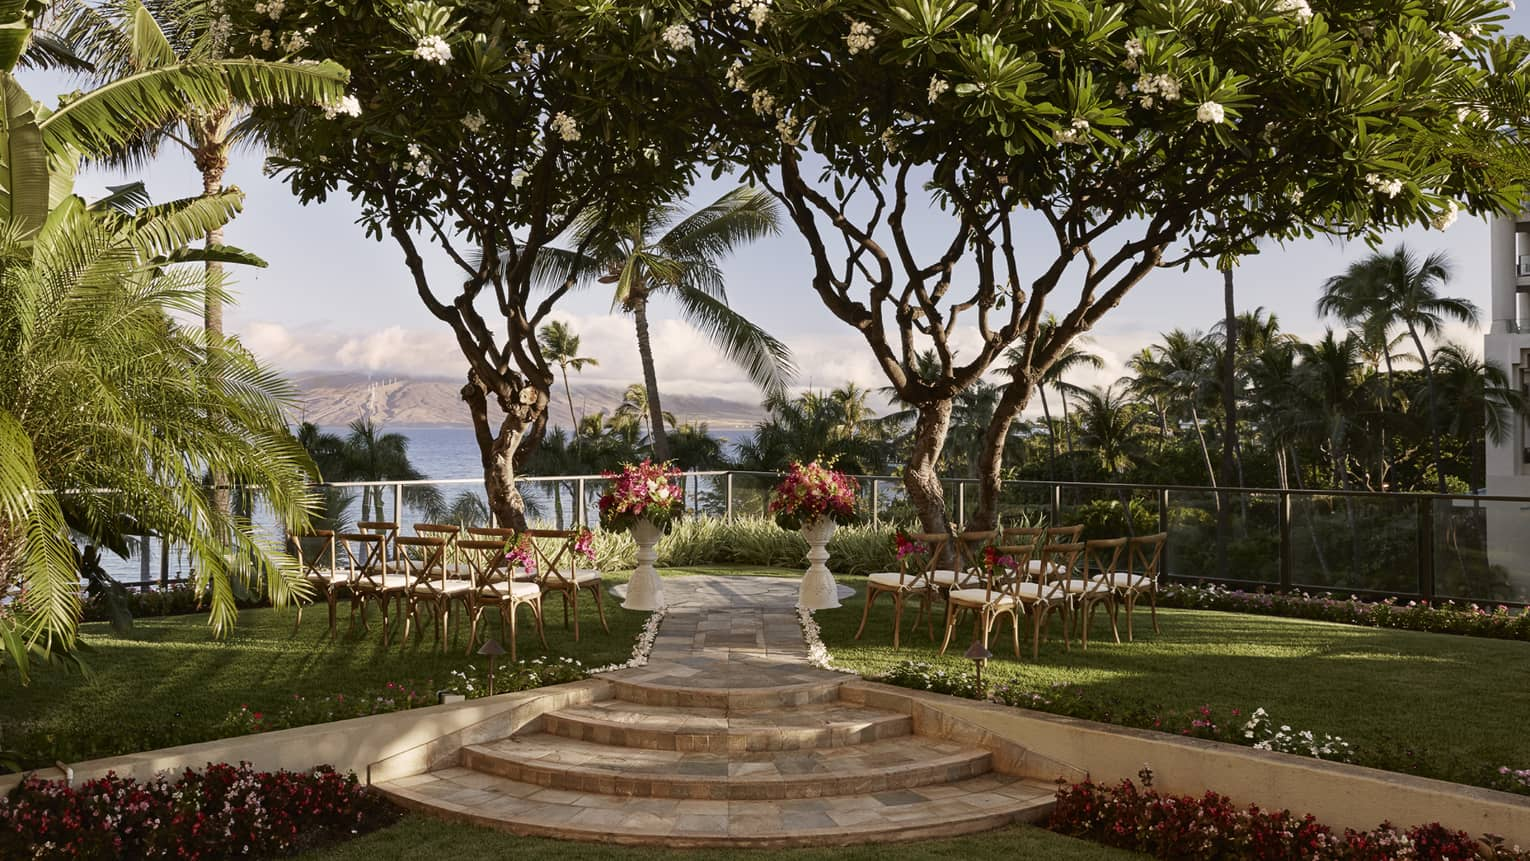 Outdoor wedding with chairs, flowers facing towards ocean and island, surrounded by trees